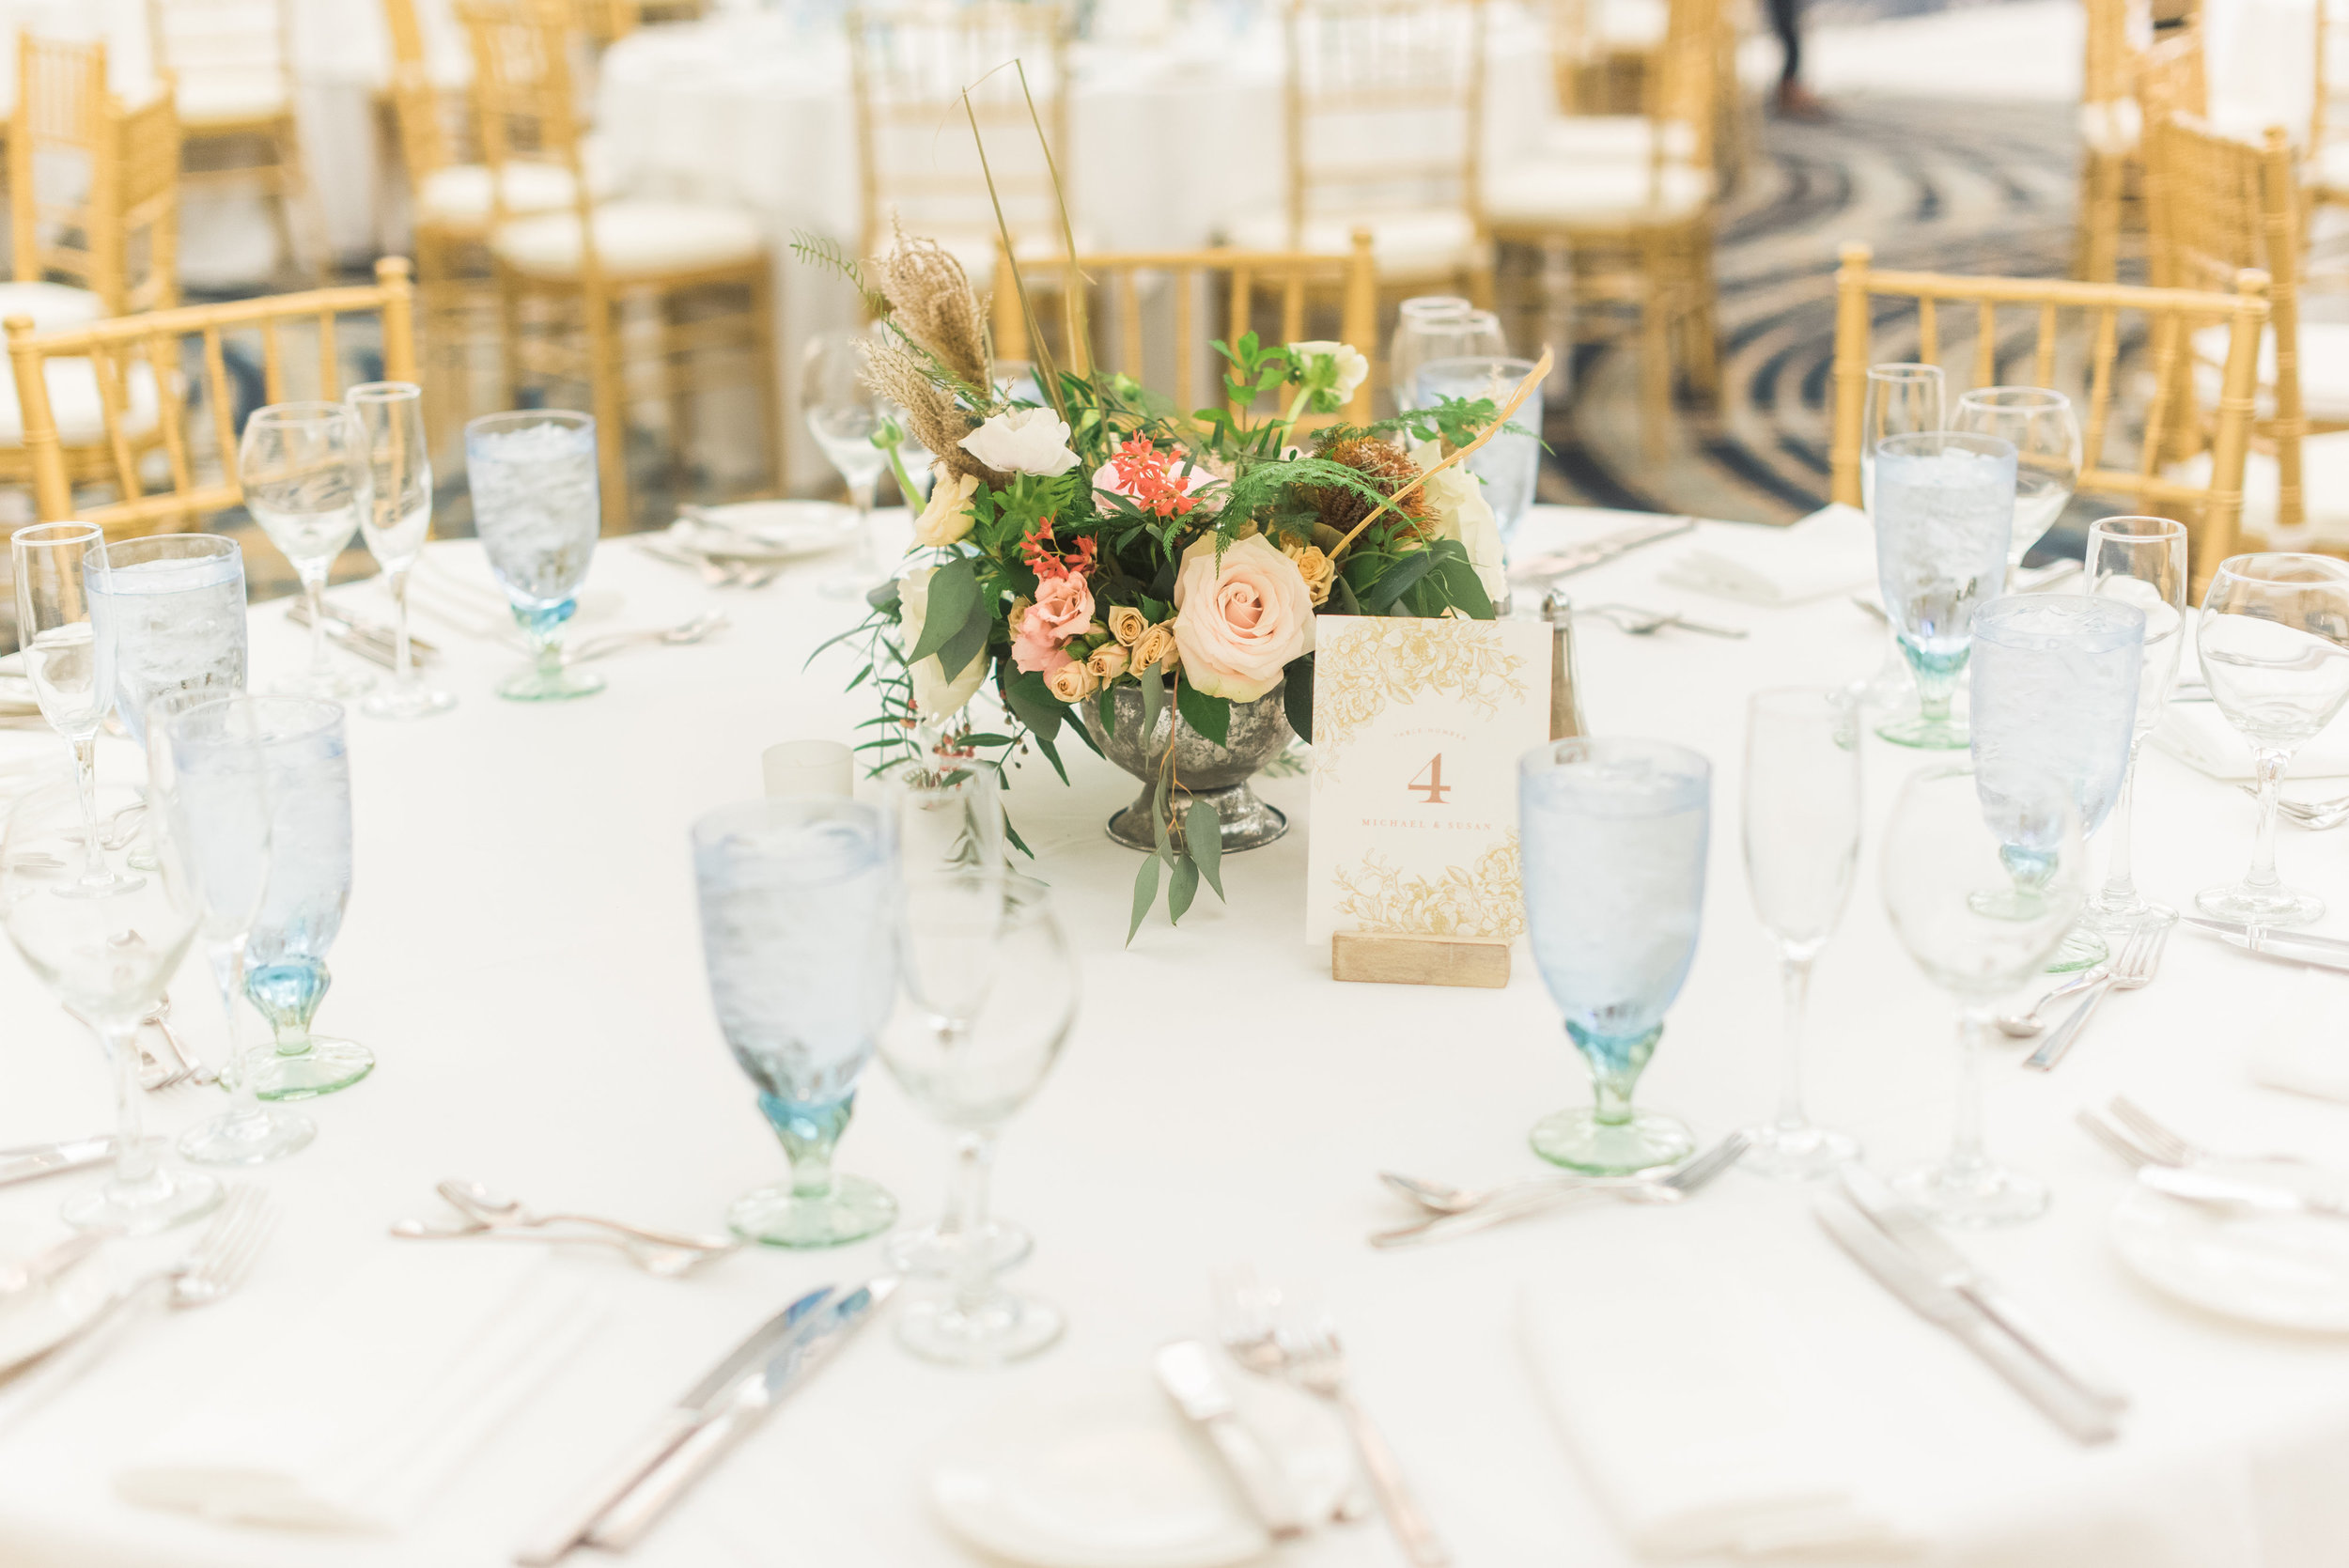 susan and michael wedding with cluster events table setting.jpg